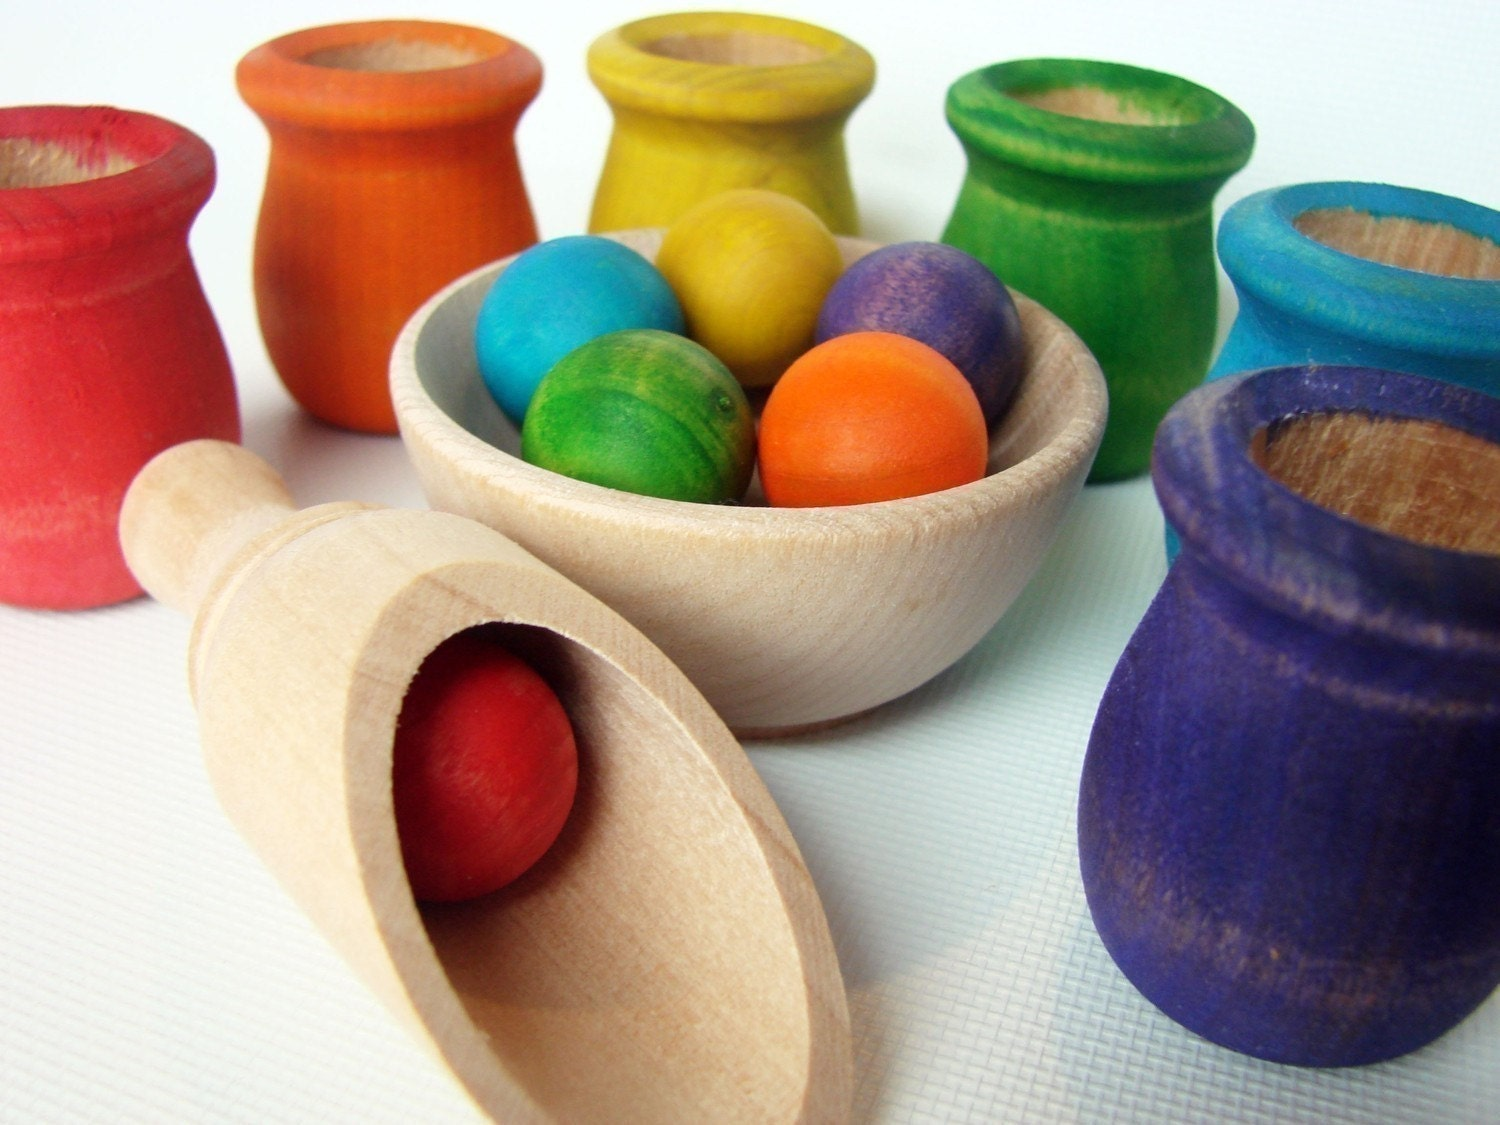 Colored Cups and Balls - A Montessori and Waldorf Inspired Wooden Materials Matching and Motor Skills Toy - MamaMayI